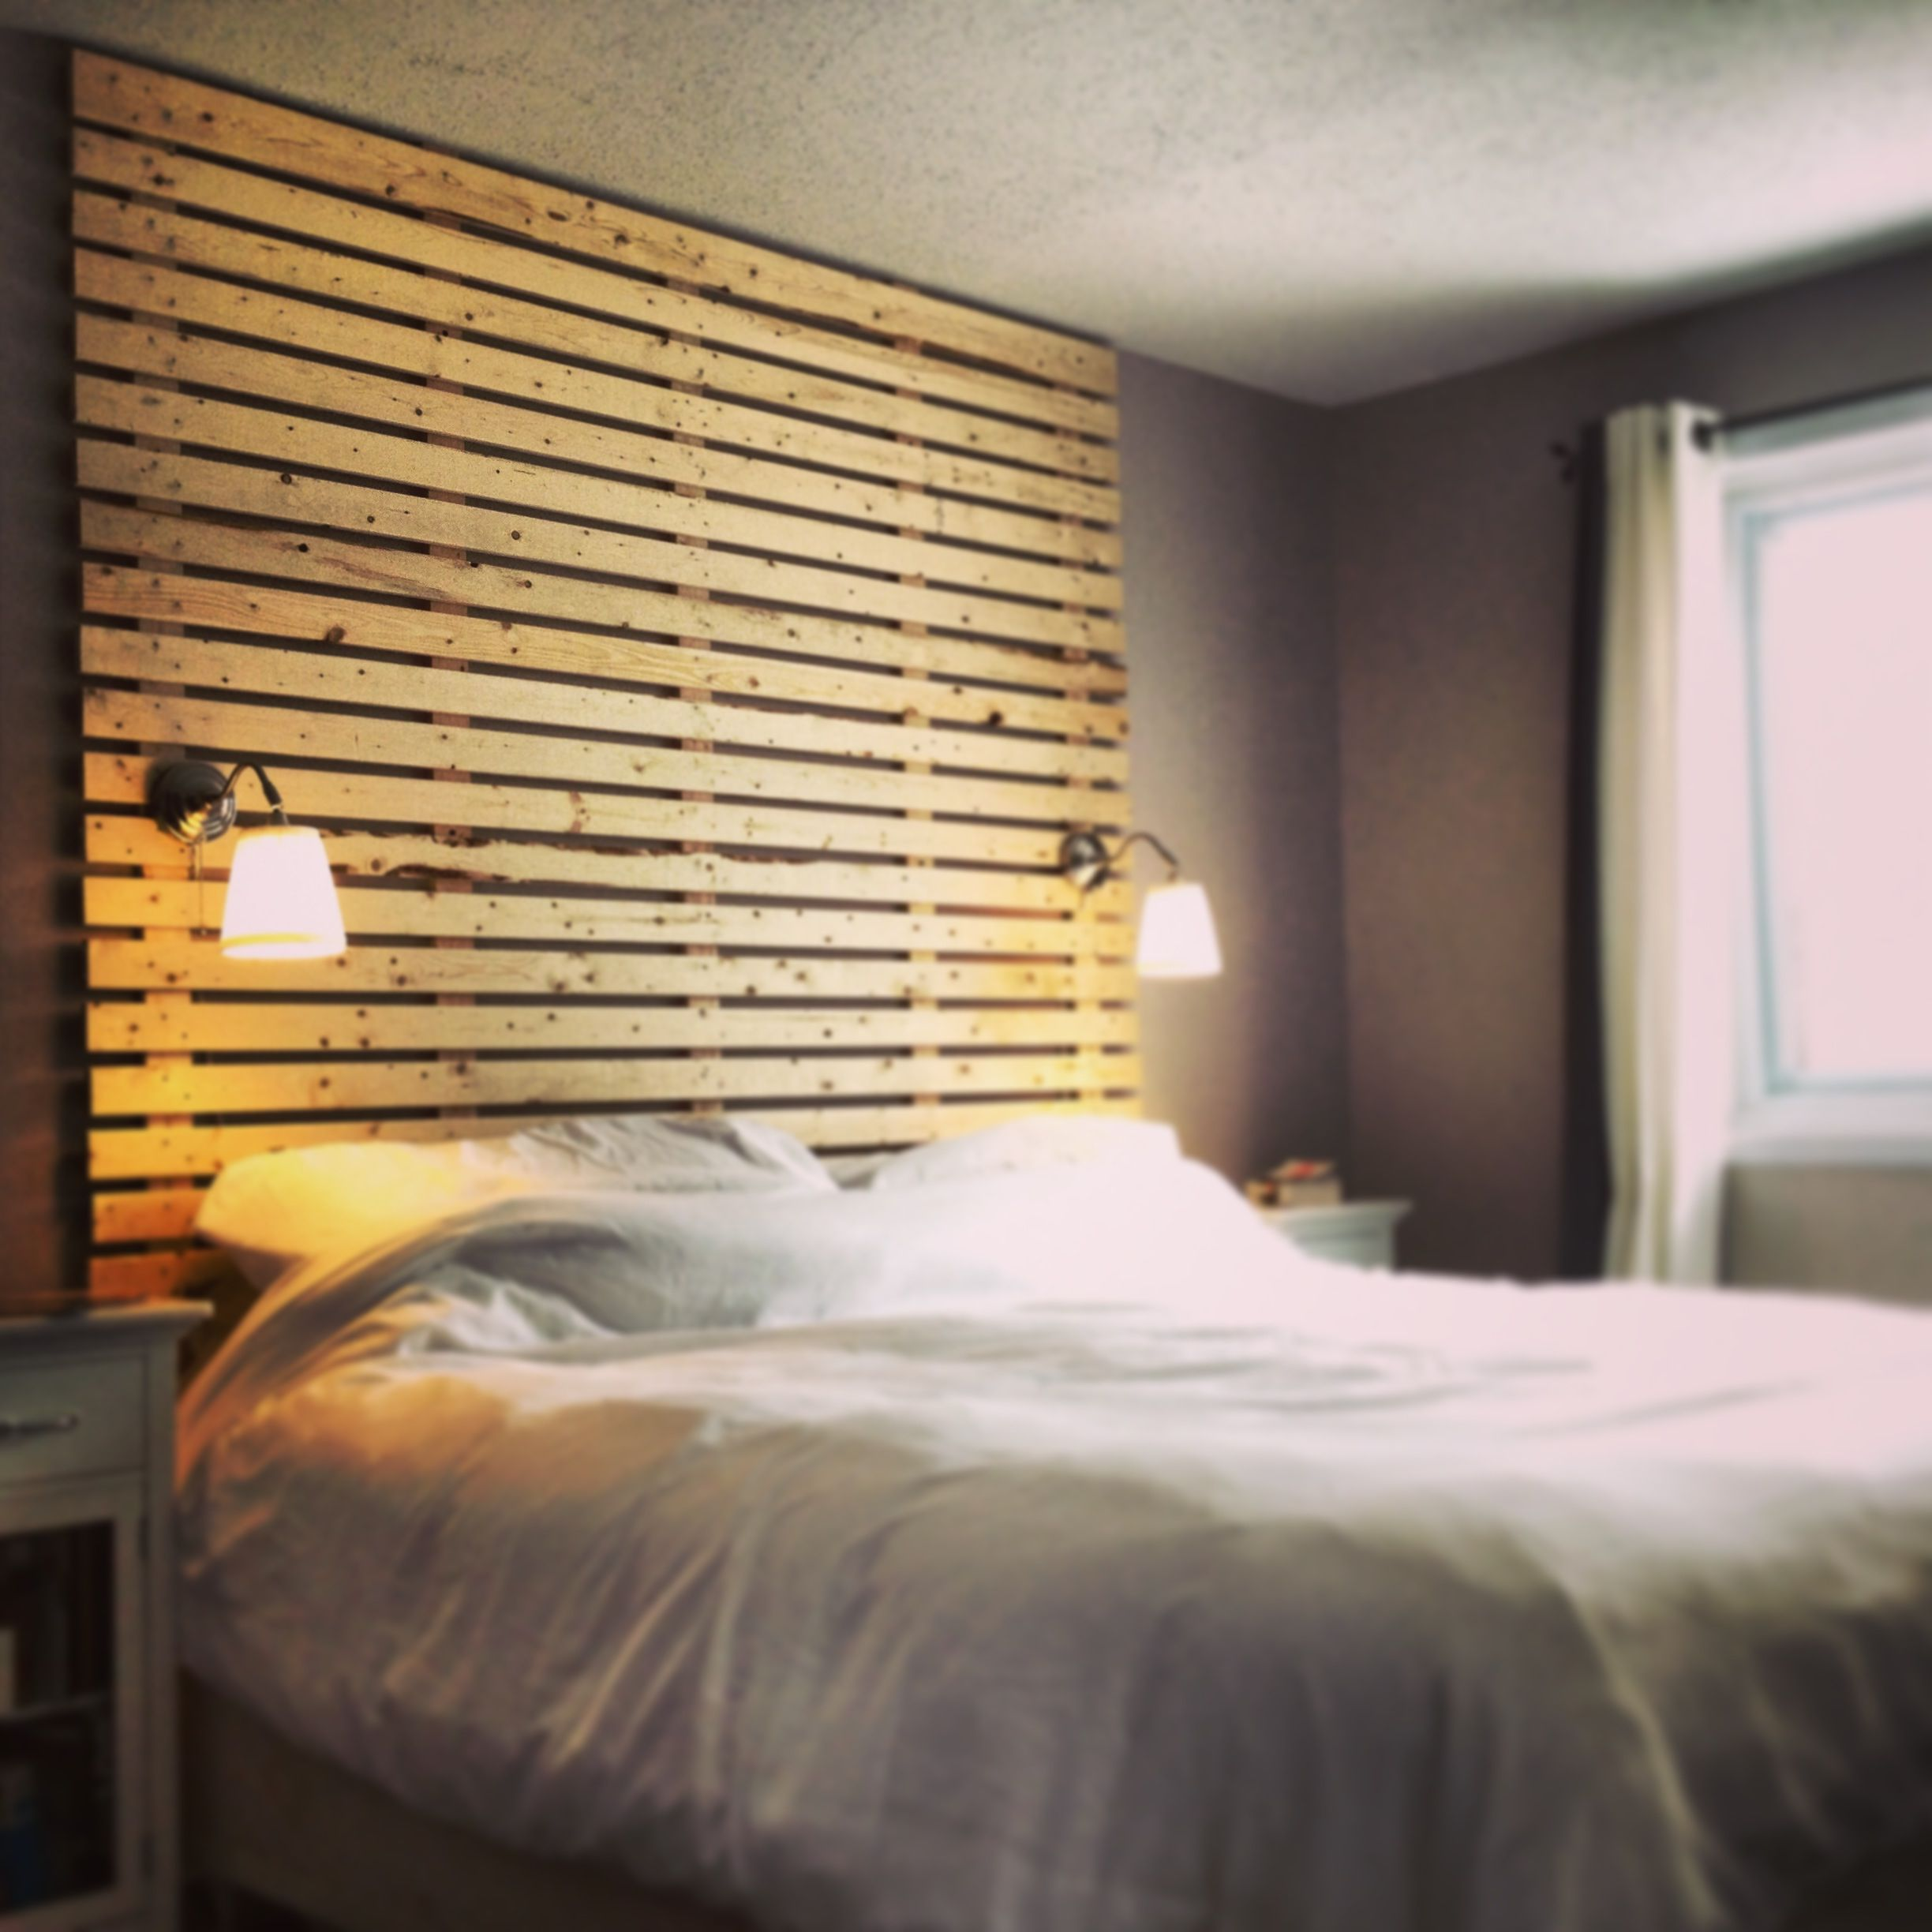 Just Finished This Floor To Ceiling King Size Slat Headboard. The Wood Is  Still Natural